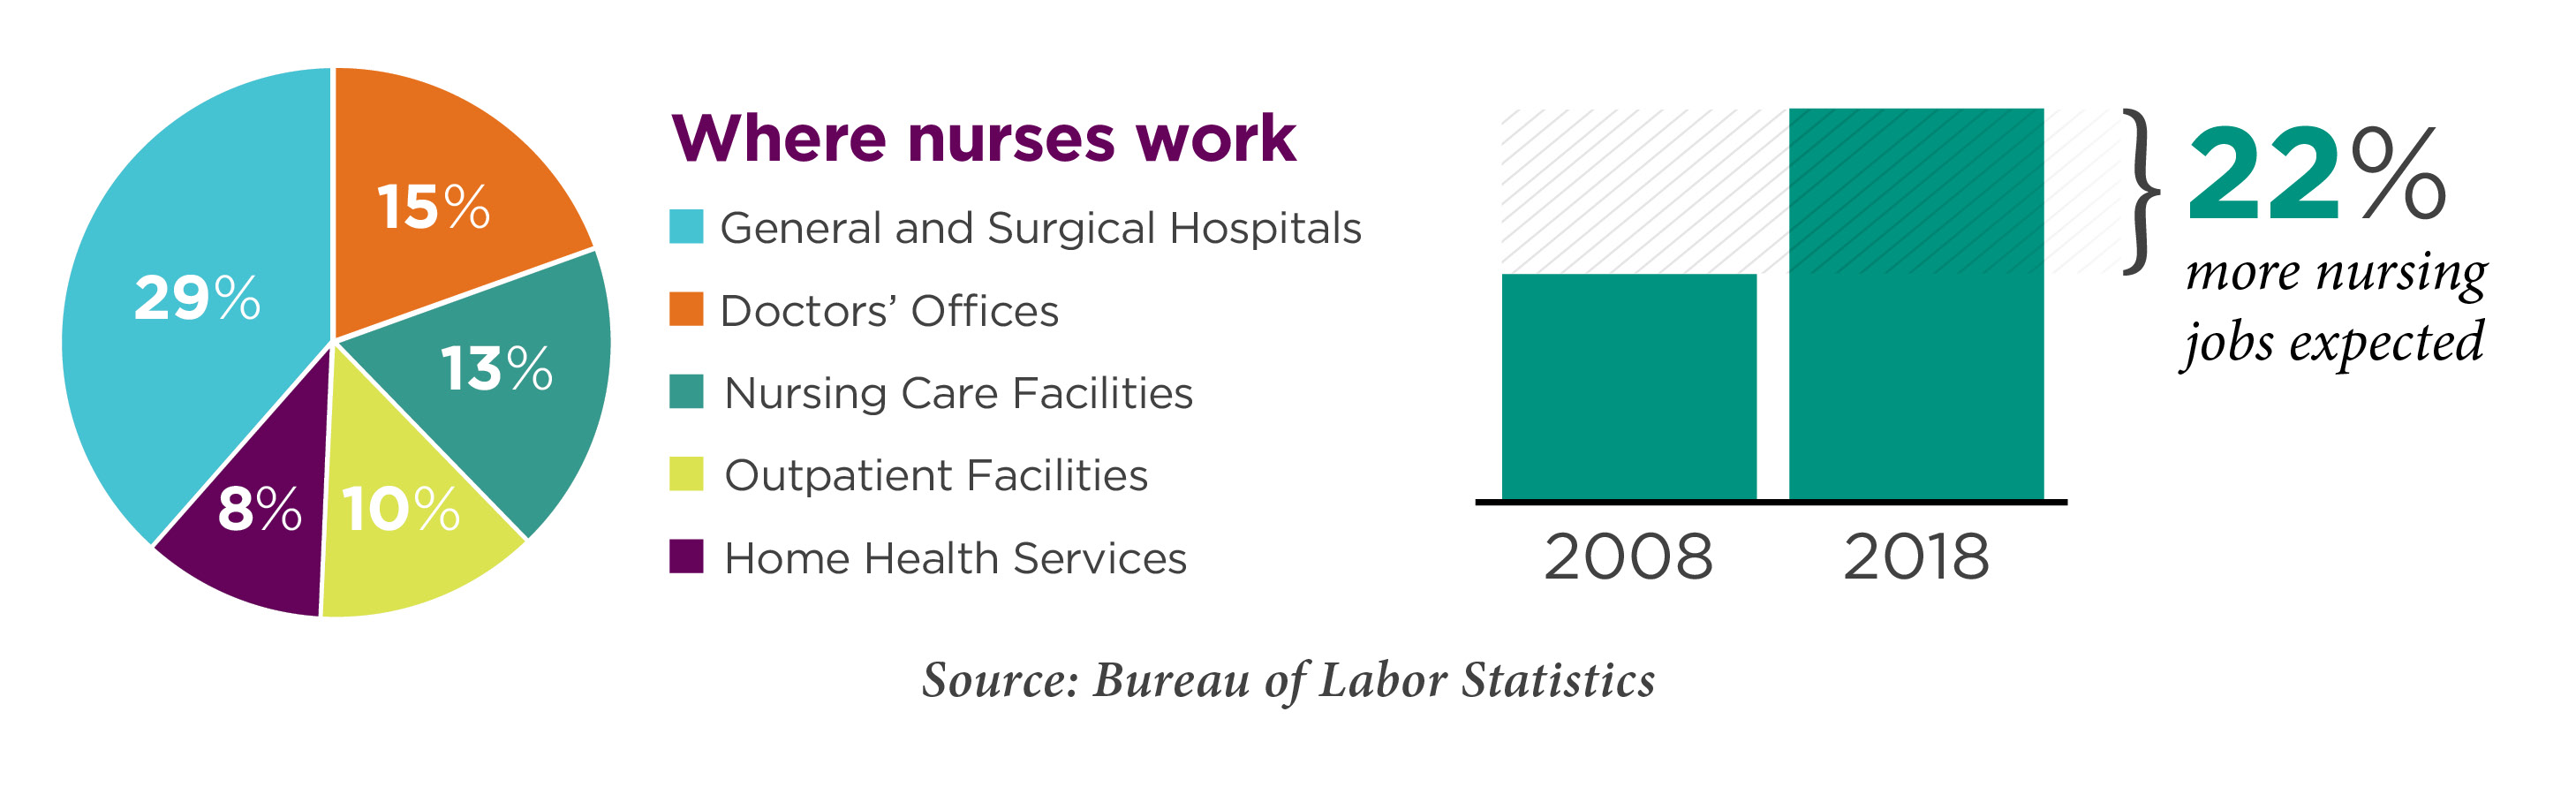 Where Nurses Work chart and graph